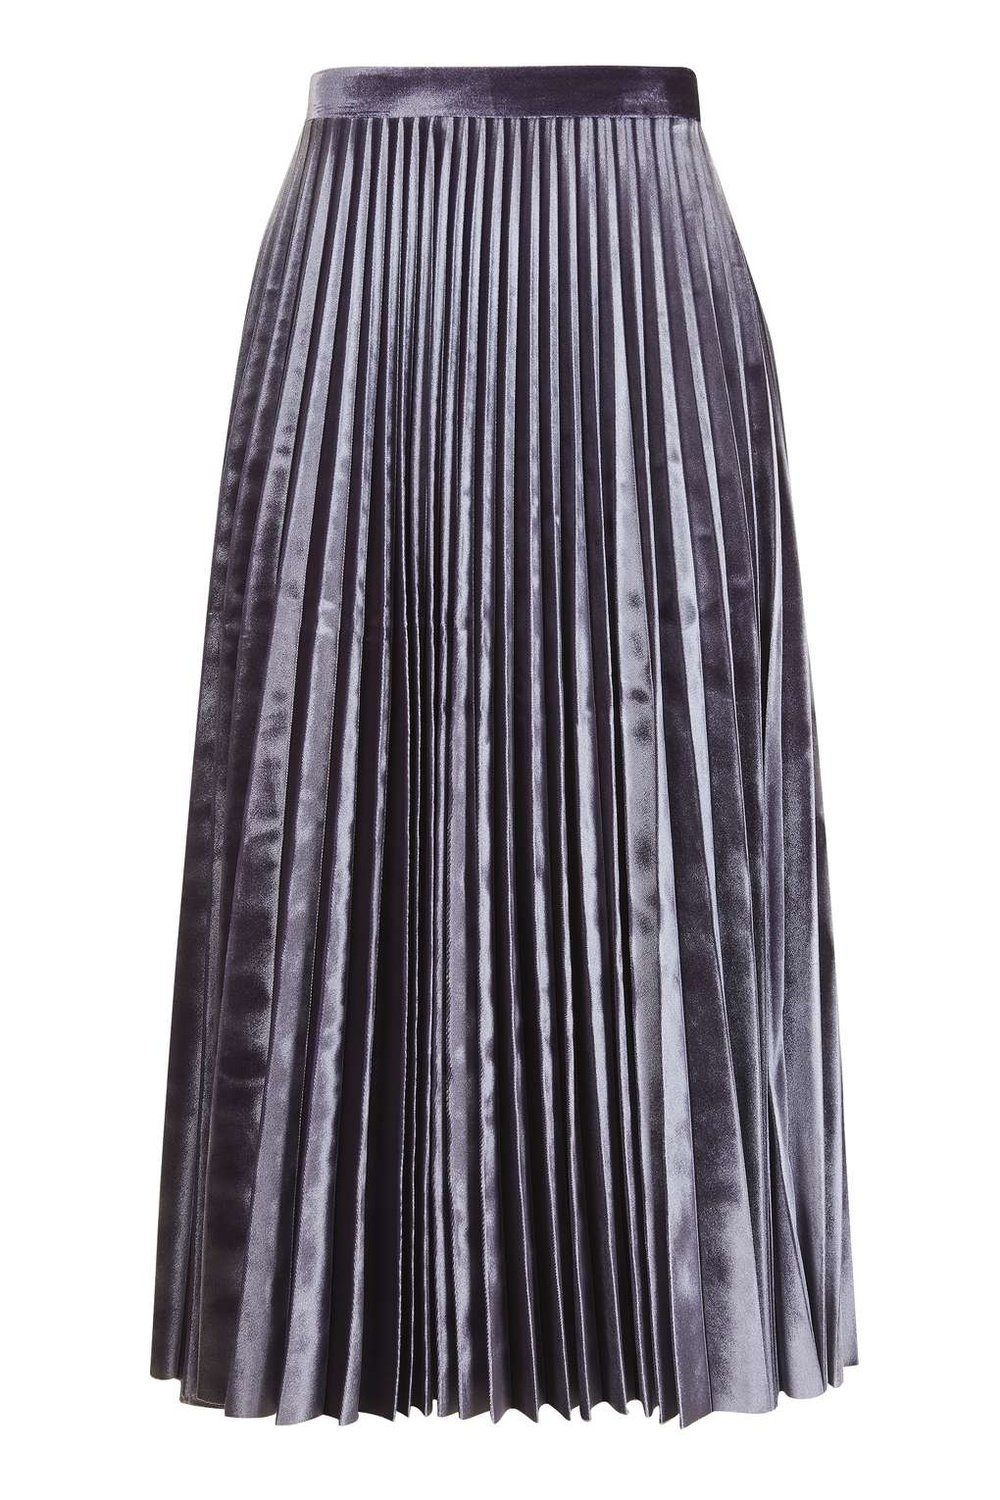 TOPSHOP VELVET PLEATED SKIRT